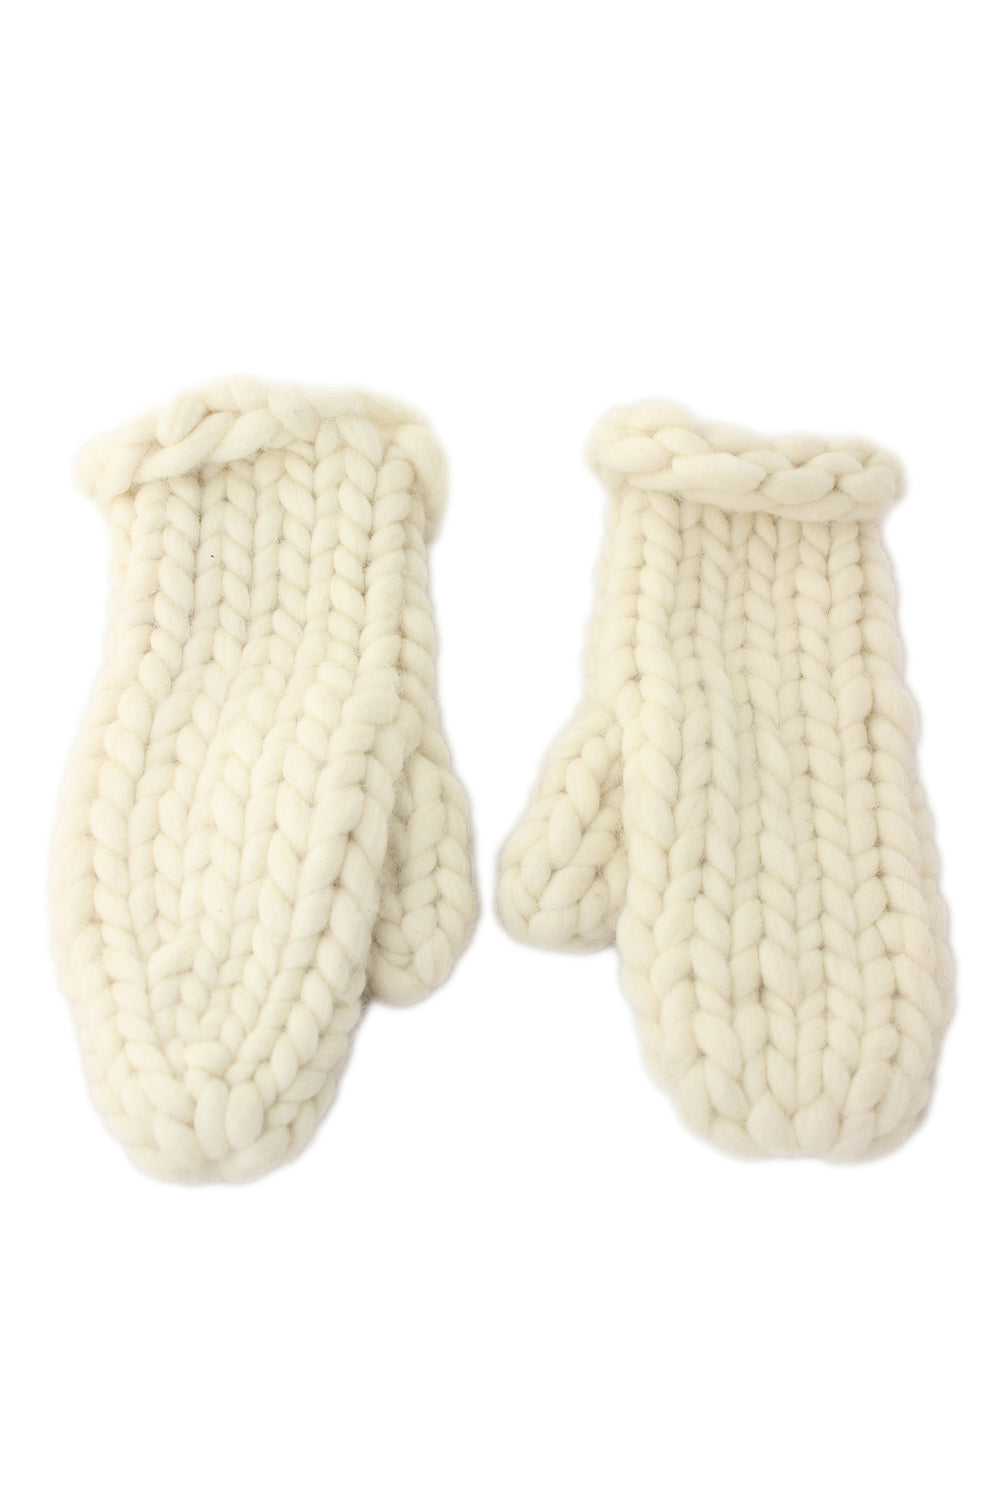 unlabeled cream chunky knit wool gloves.